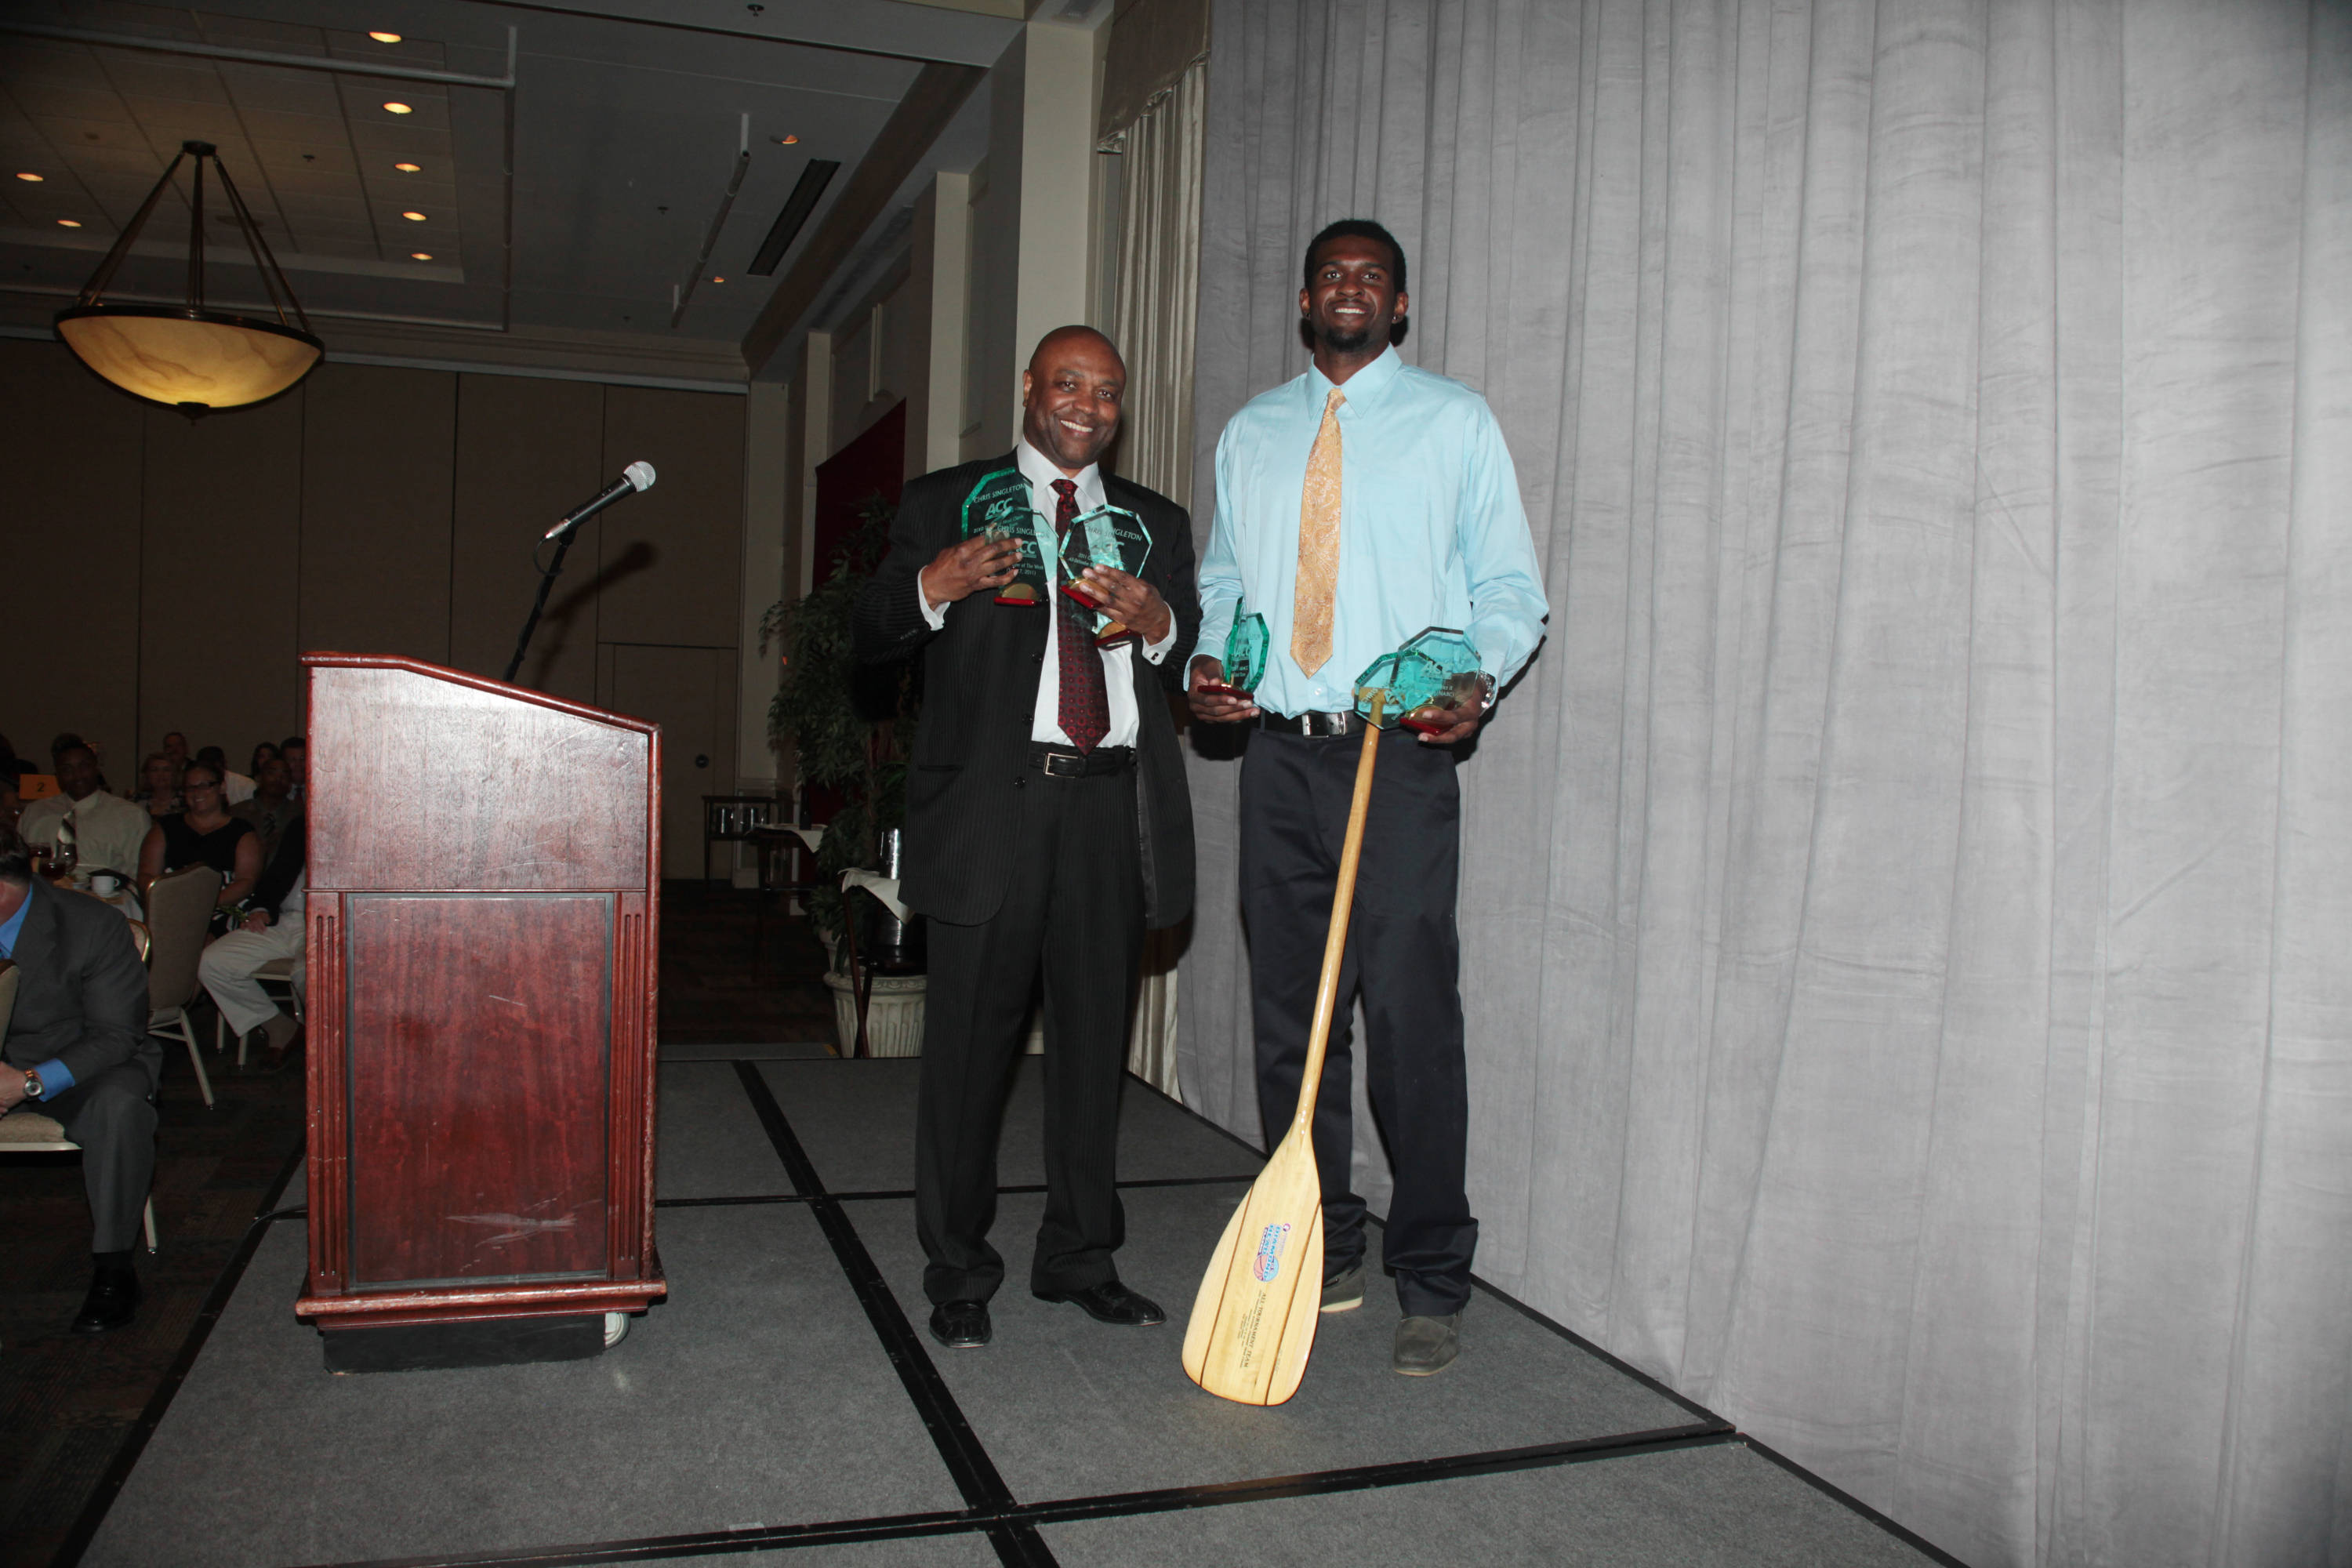 2011 Men's Basketball Banquet - Chris Singleton